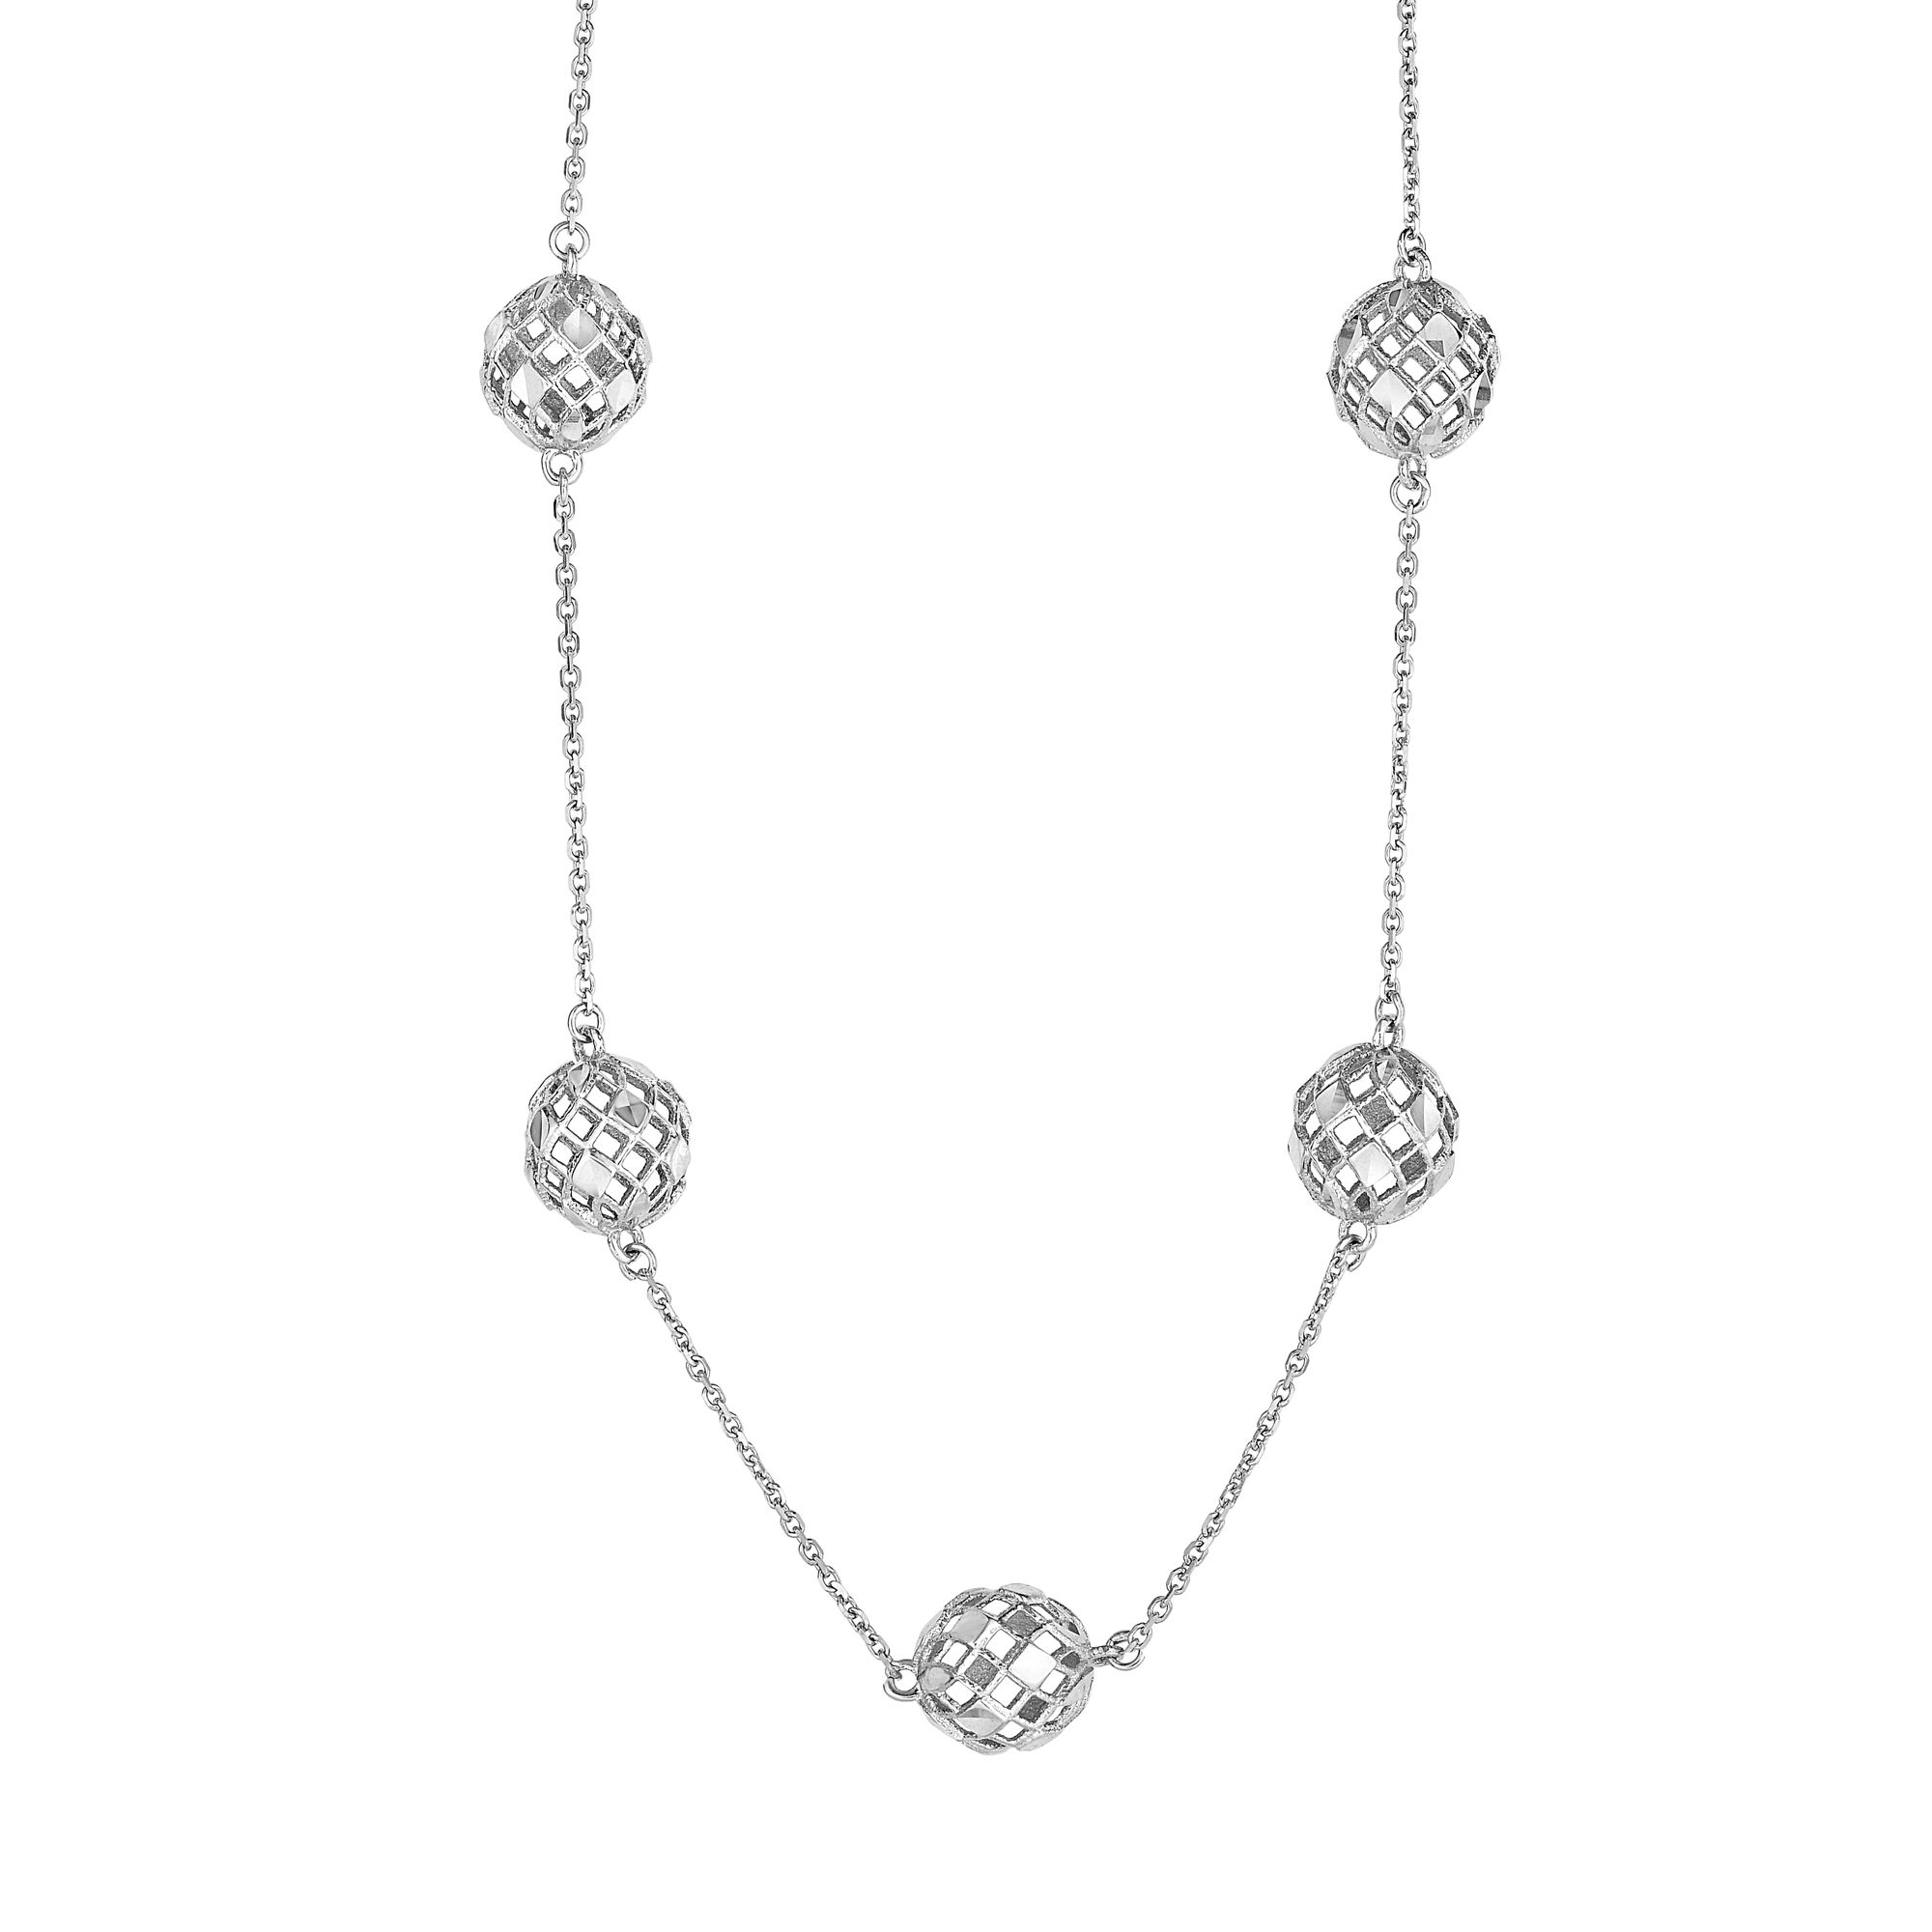 """10k White Gold Fancy Mesh Ball Stations Chain Necklace, Lobster Clasp 17"""" by JewelStop"""